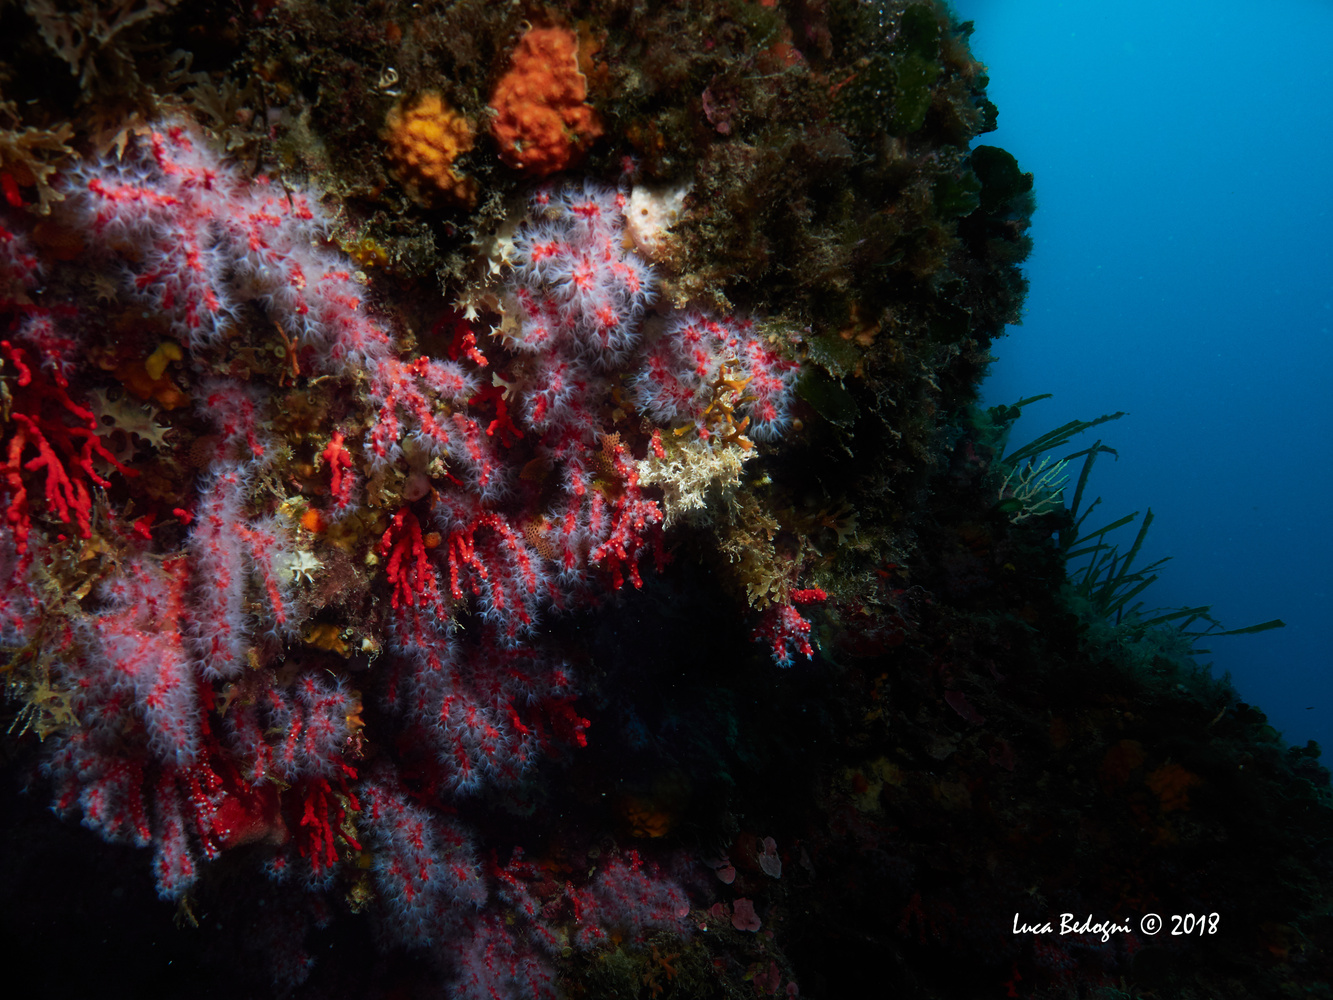 Red Coral by Luca Bedogni